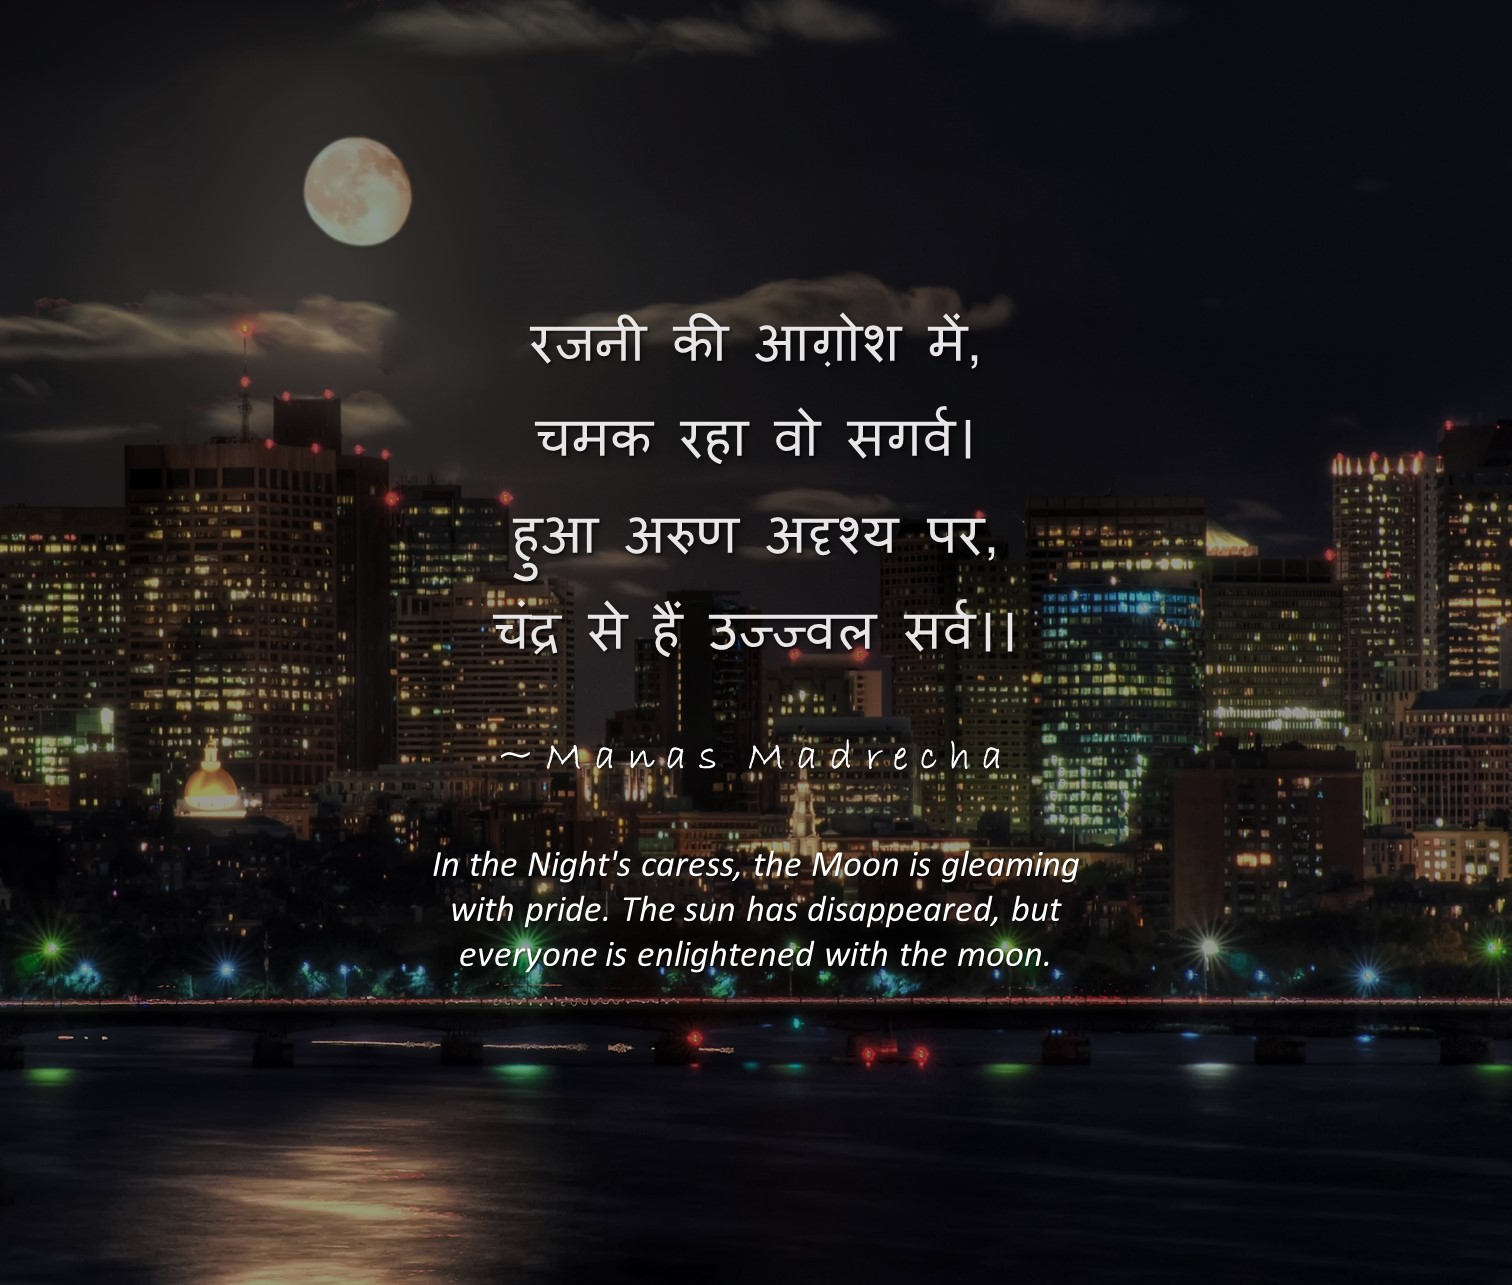 hindi poem on moon, poem on moon, moon quotes, moon sky, moon in night sky, moon over city, moonlight over city, Manas Madrecha, Manas Madrecha poems, Manas Madrecha quotes, Manas Madrecha stories, Manas Madrecha blog, simplifying universe, night city, city lights in night, full moon in night